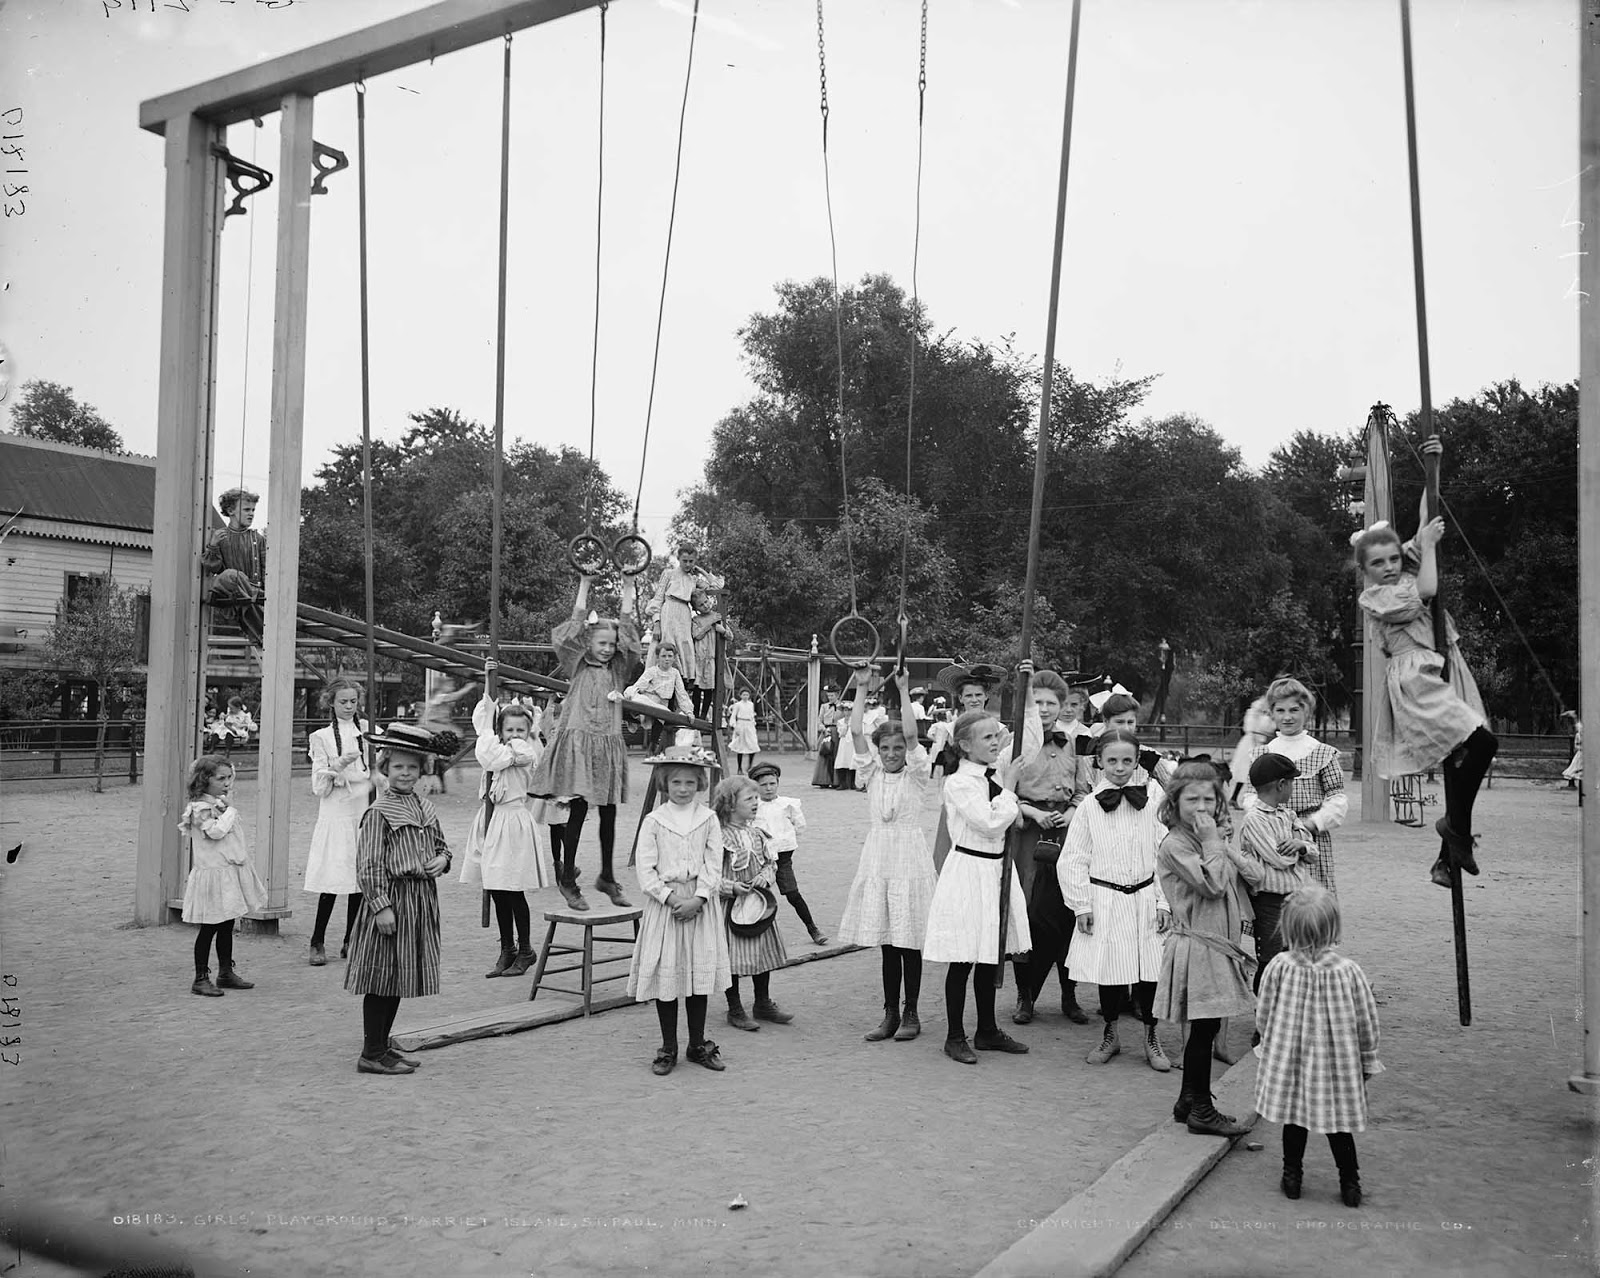 Girls' playground, Harriet Island, St. Paul, Minn. 1905.